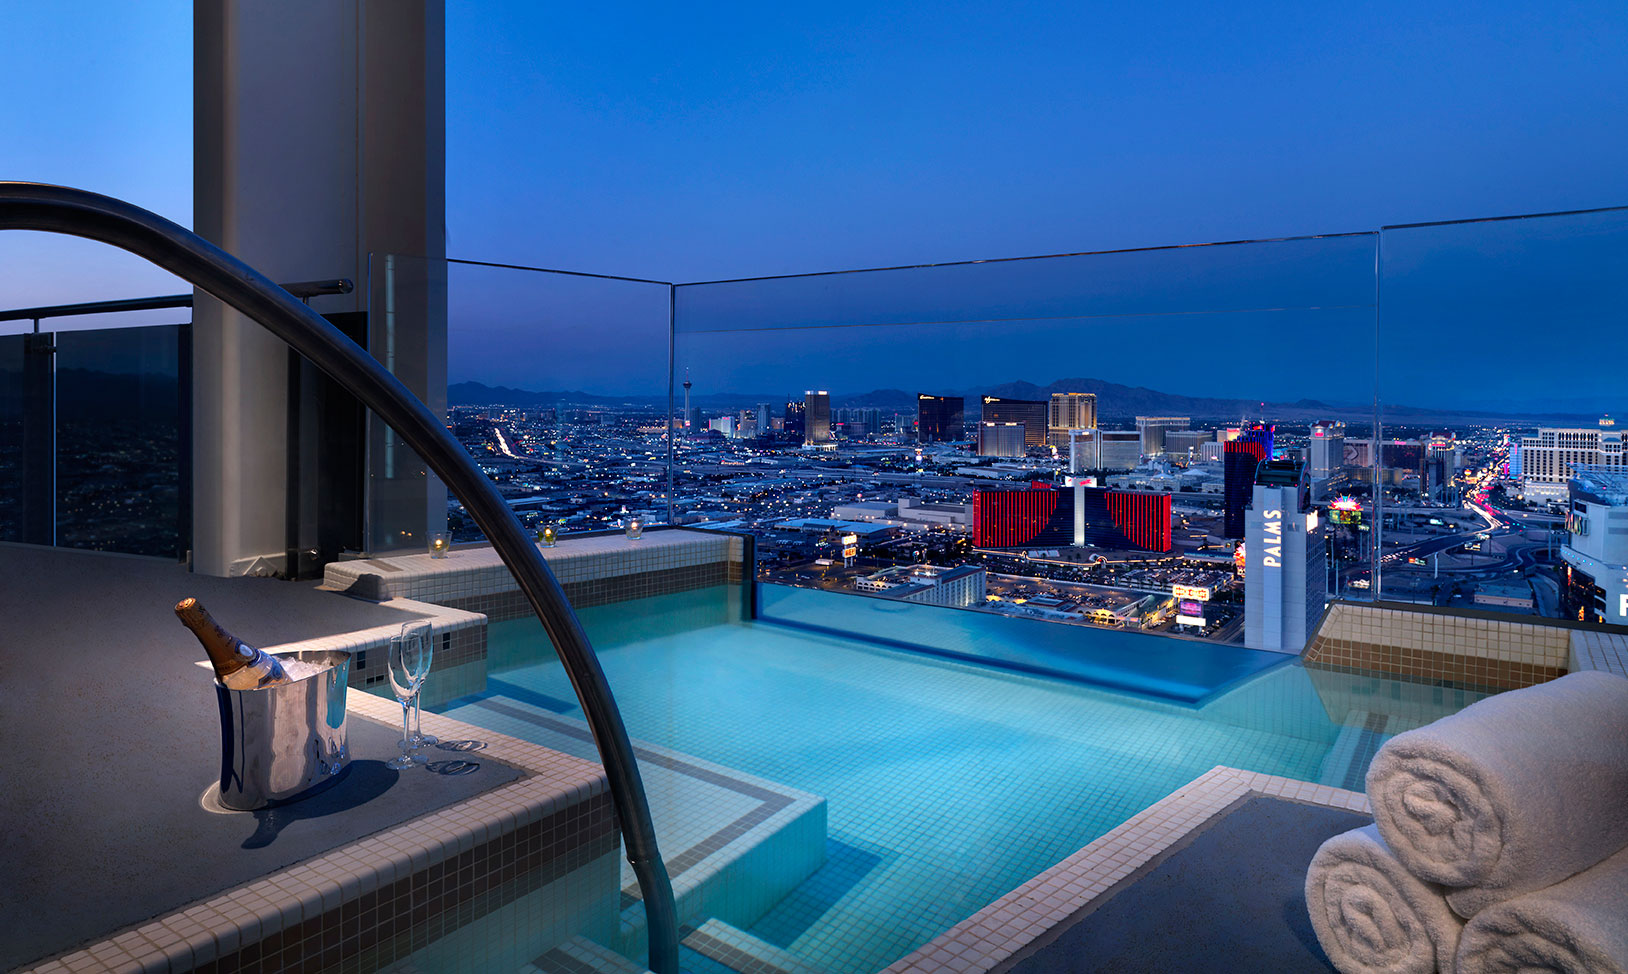 The Best Vegas Rooms With A View Las Vegas Blogs - Rooms with pools